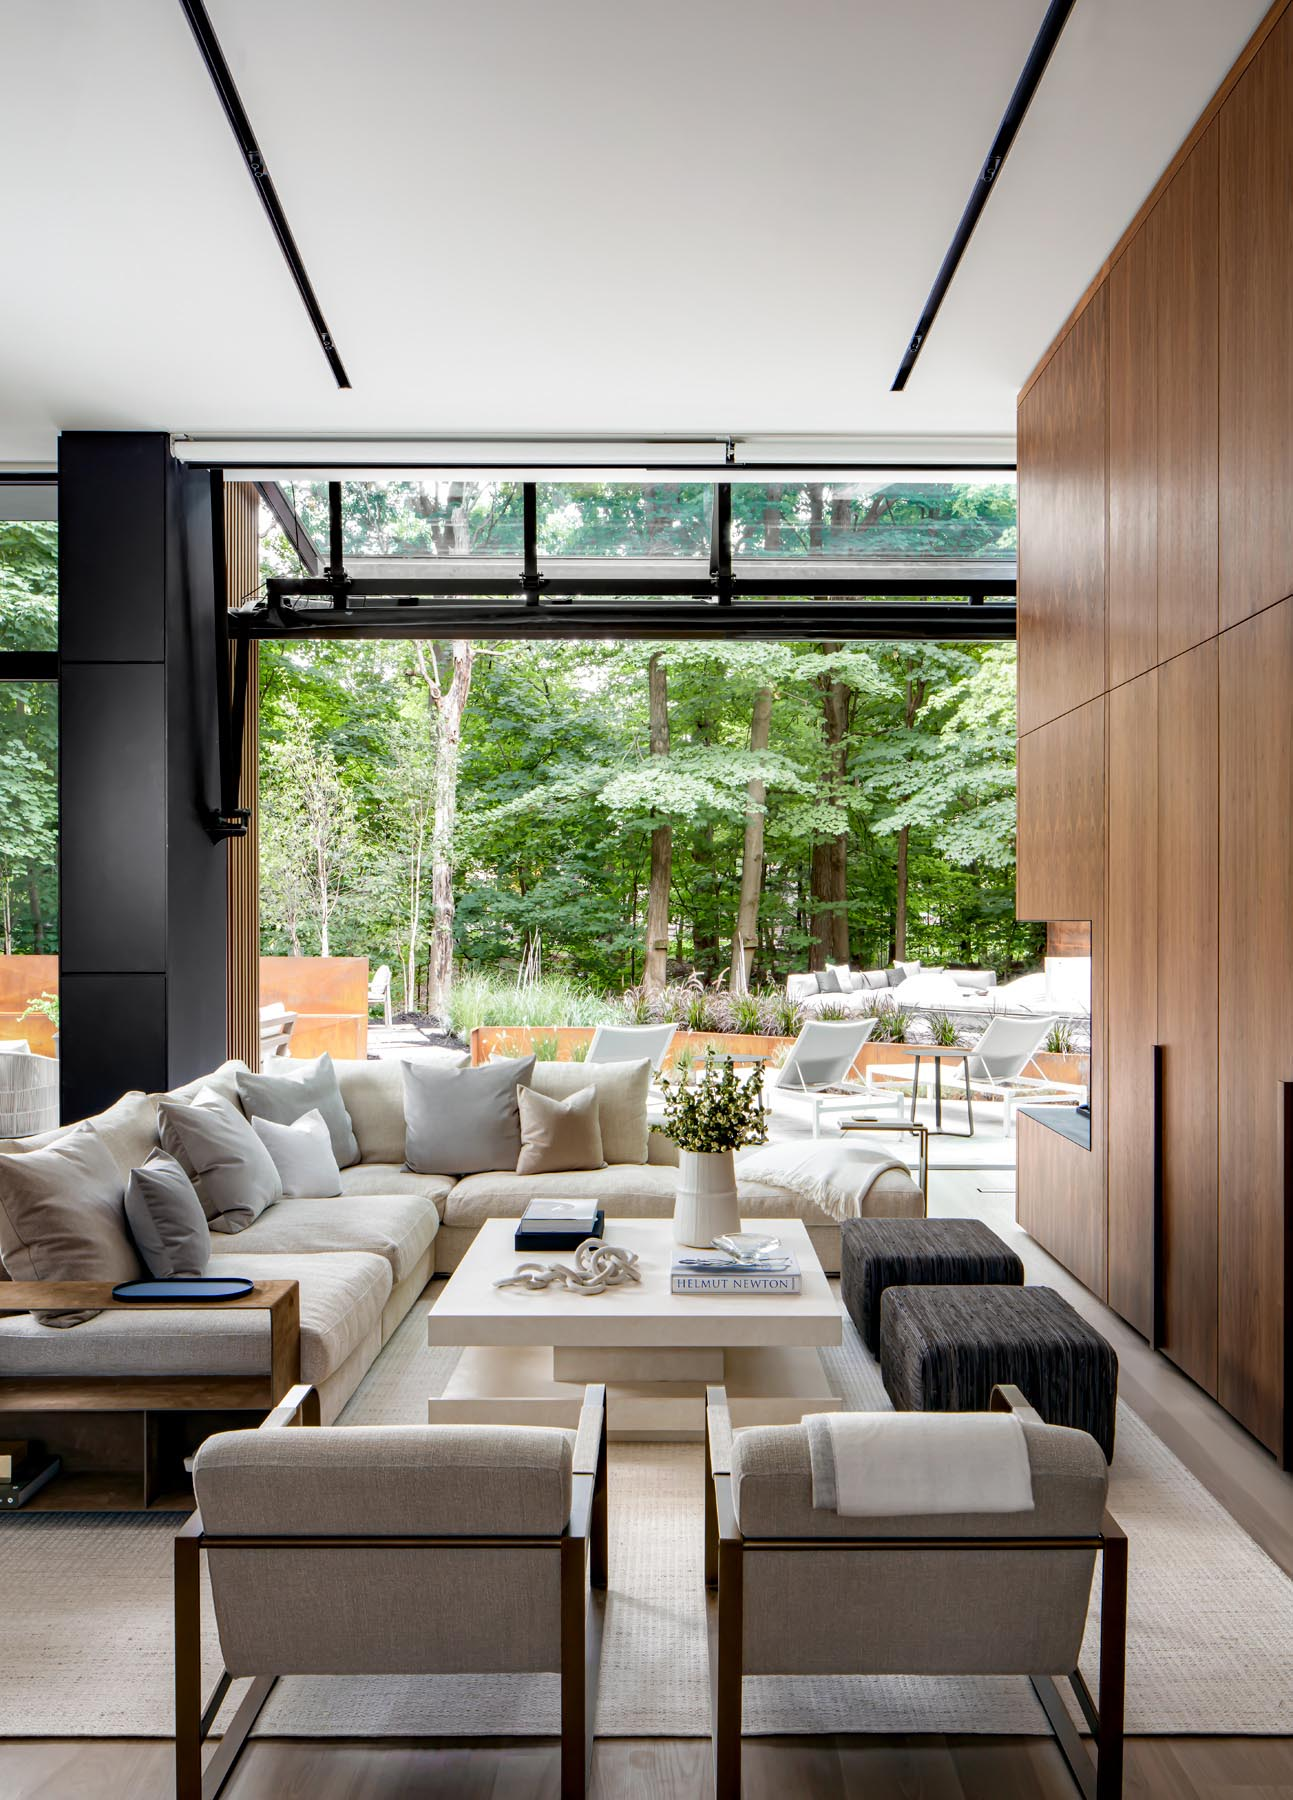 This modern living room includes a folding glass wall, two bi-fold pocket doors that open up and hide away, revealing the TV and open shelving, as well a three sided open flame custom fireplace.